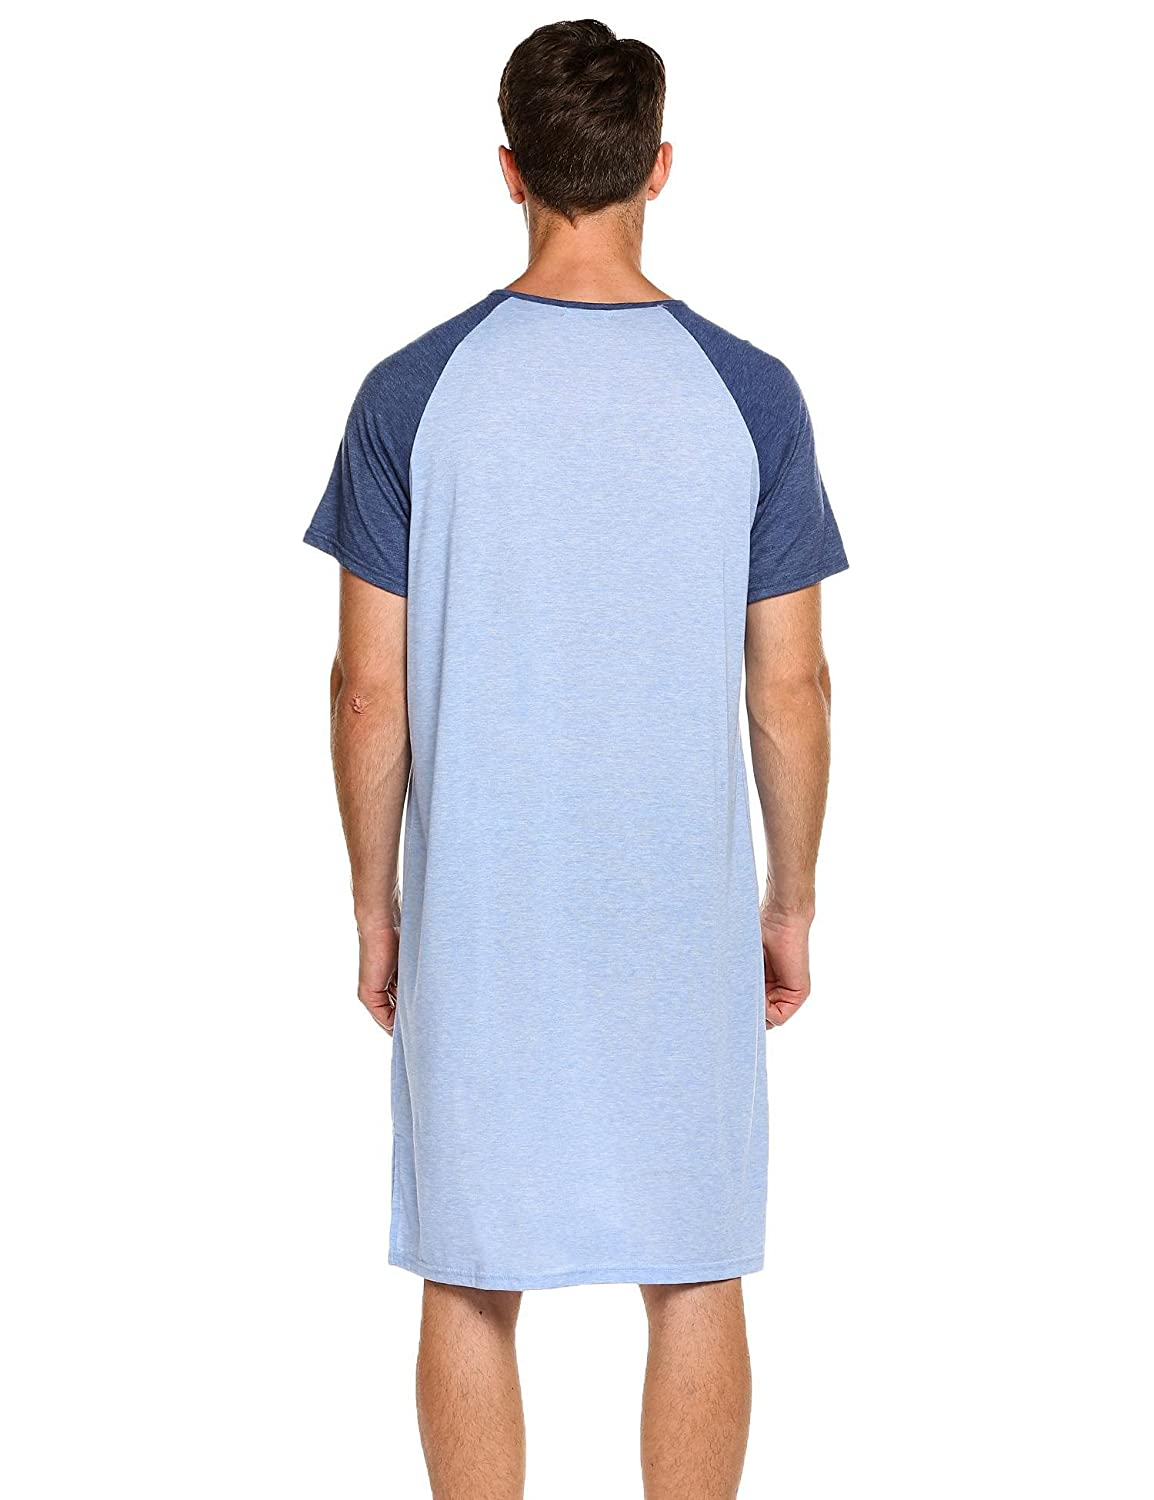 Langle Men s Nightgown Big   Tall Sleep Shirt Short Sleeve Pajama Henly  Plus Size Nightshirt M-XXXL at Amazon Men s Clothing store  e7997cf3d